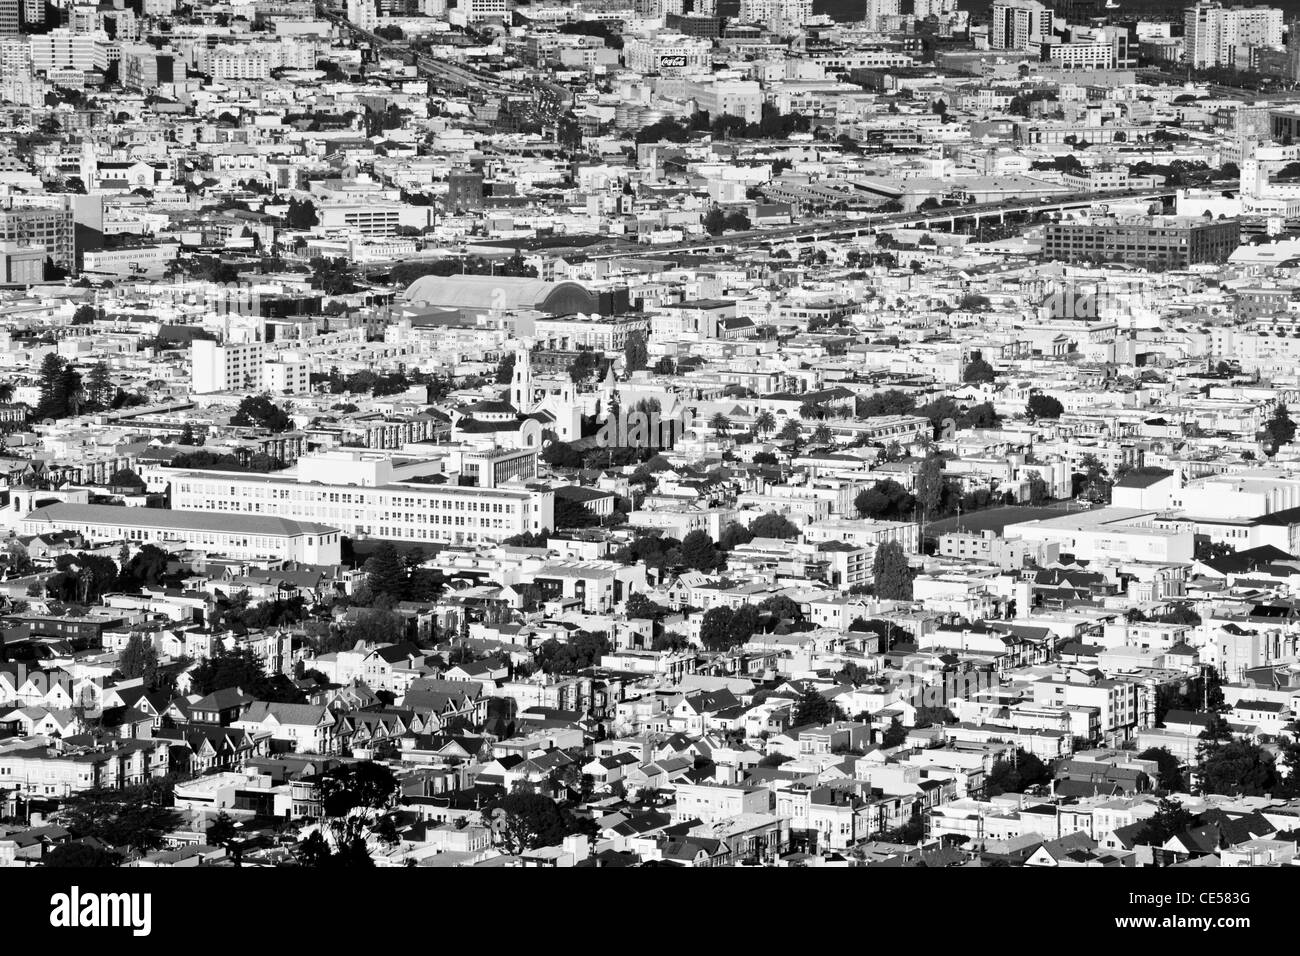 black and white photograph of San Francisco outskirts, showing the tightly-packed urban sprawl of buildings, streets - Stock Image